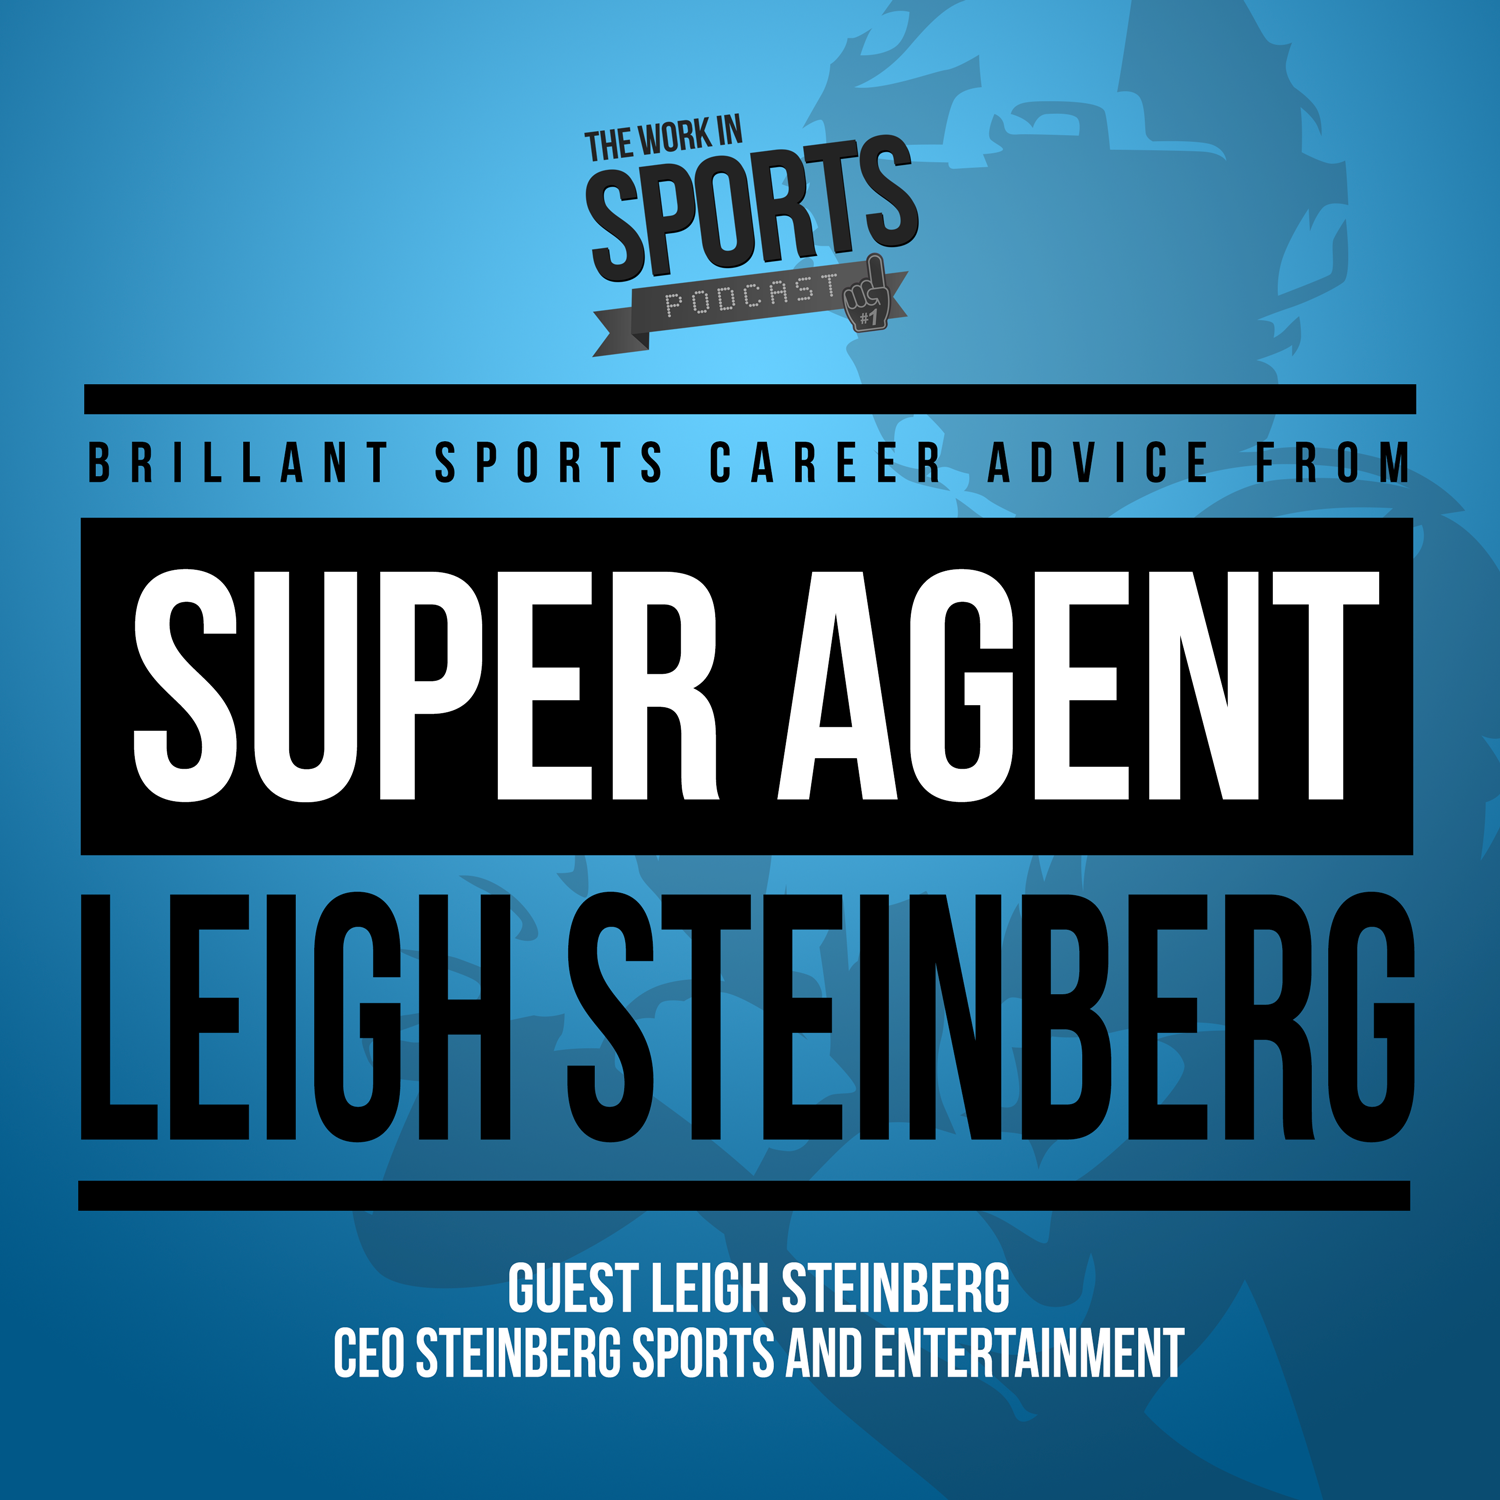 leigh steinberg on the work in sports podcast